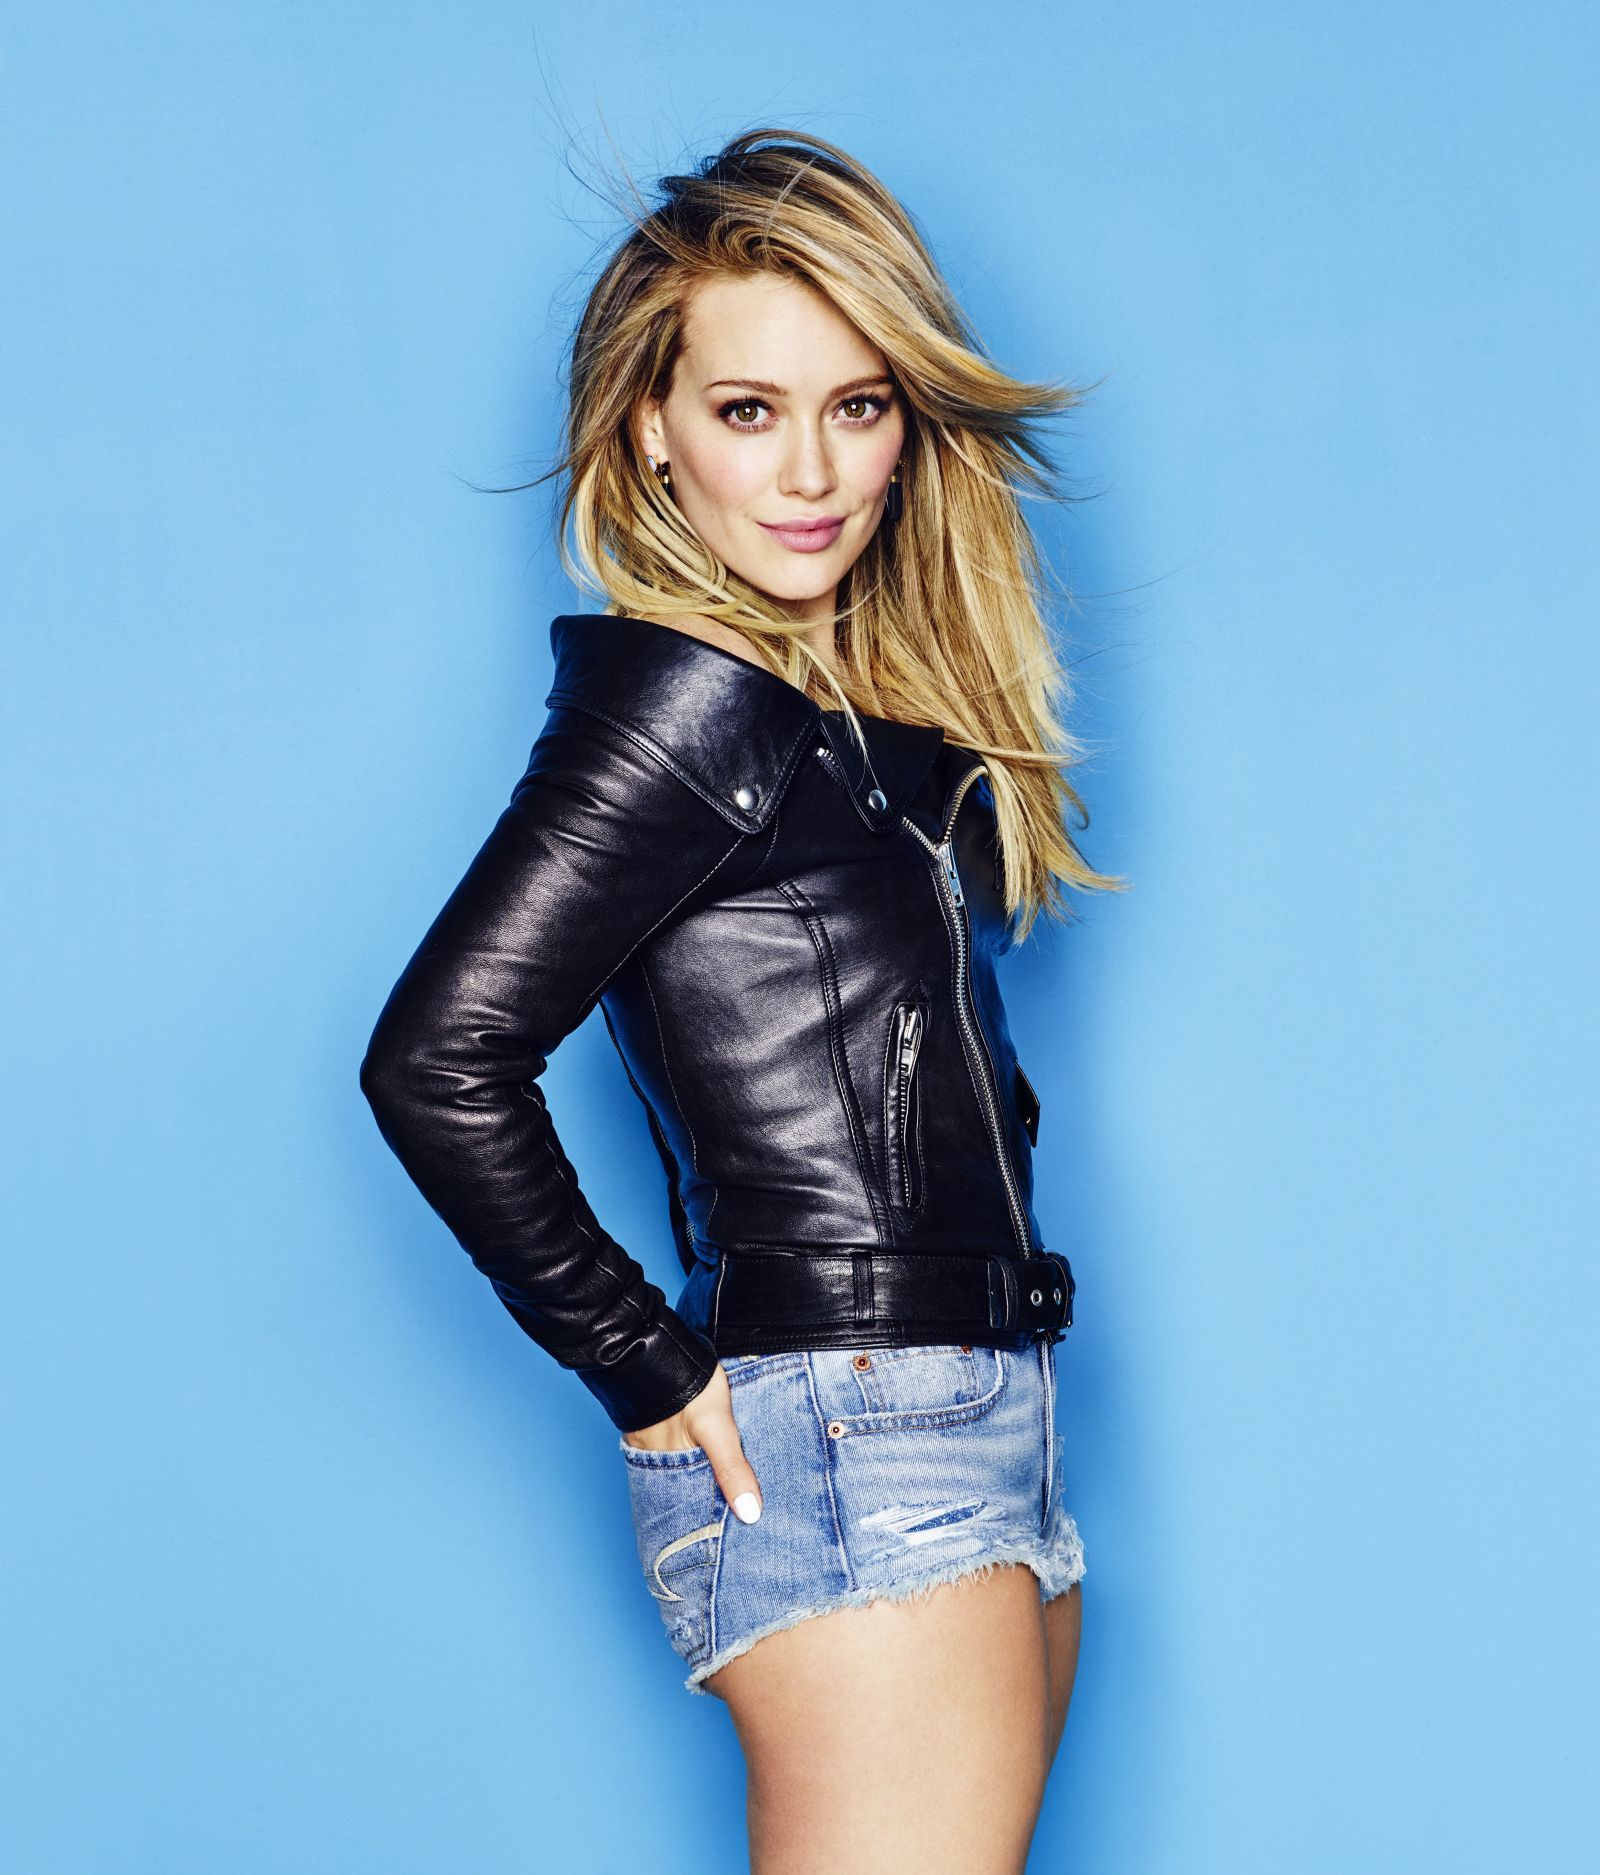 Did hilary duff lose her virginity